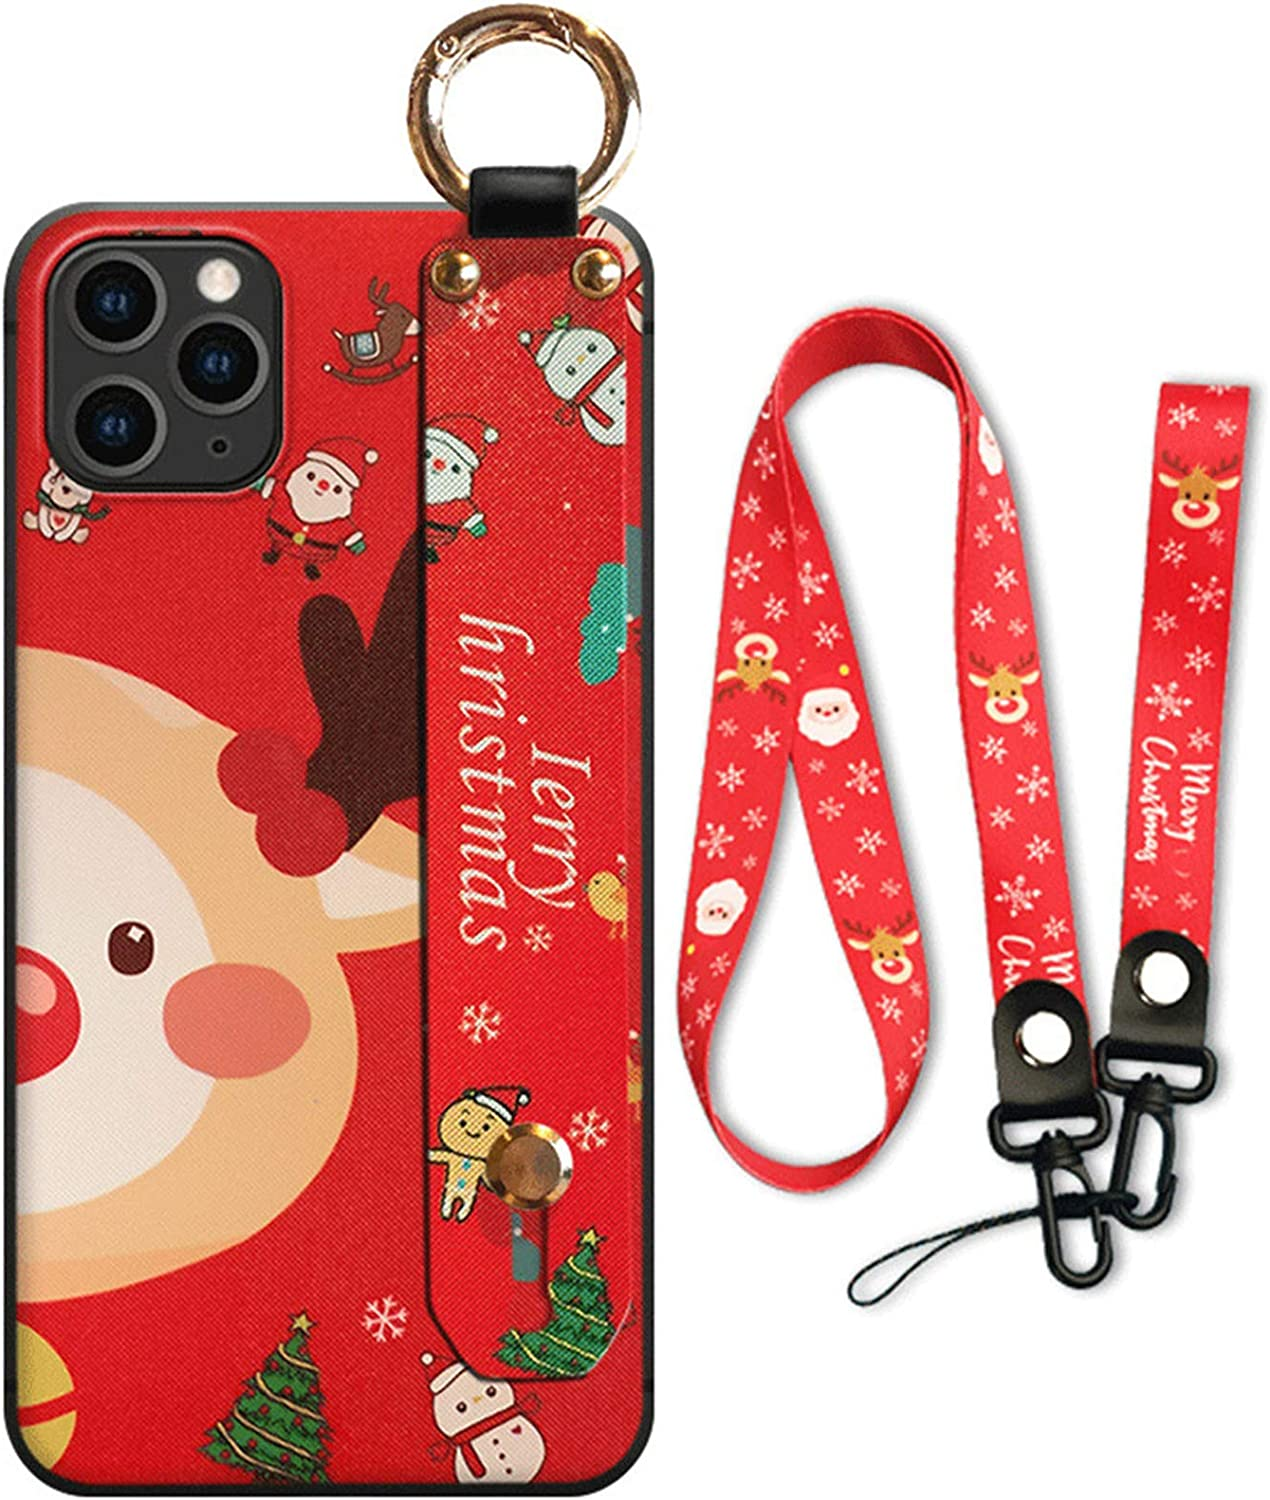 VooDirop Cute Christmas Wrist Strap Lanyard Case for iPhone 7/8 / SE, Unique Case with [Long Strap Rope] Slim Fit Shockproof Protective Case (Red Deer Head, iPhone 7/8 / SE)